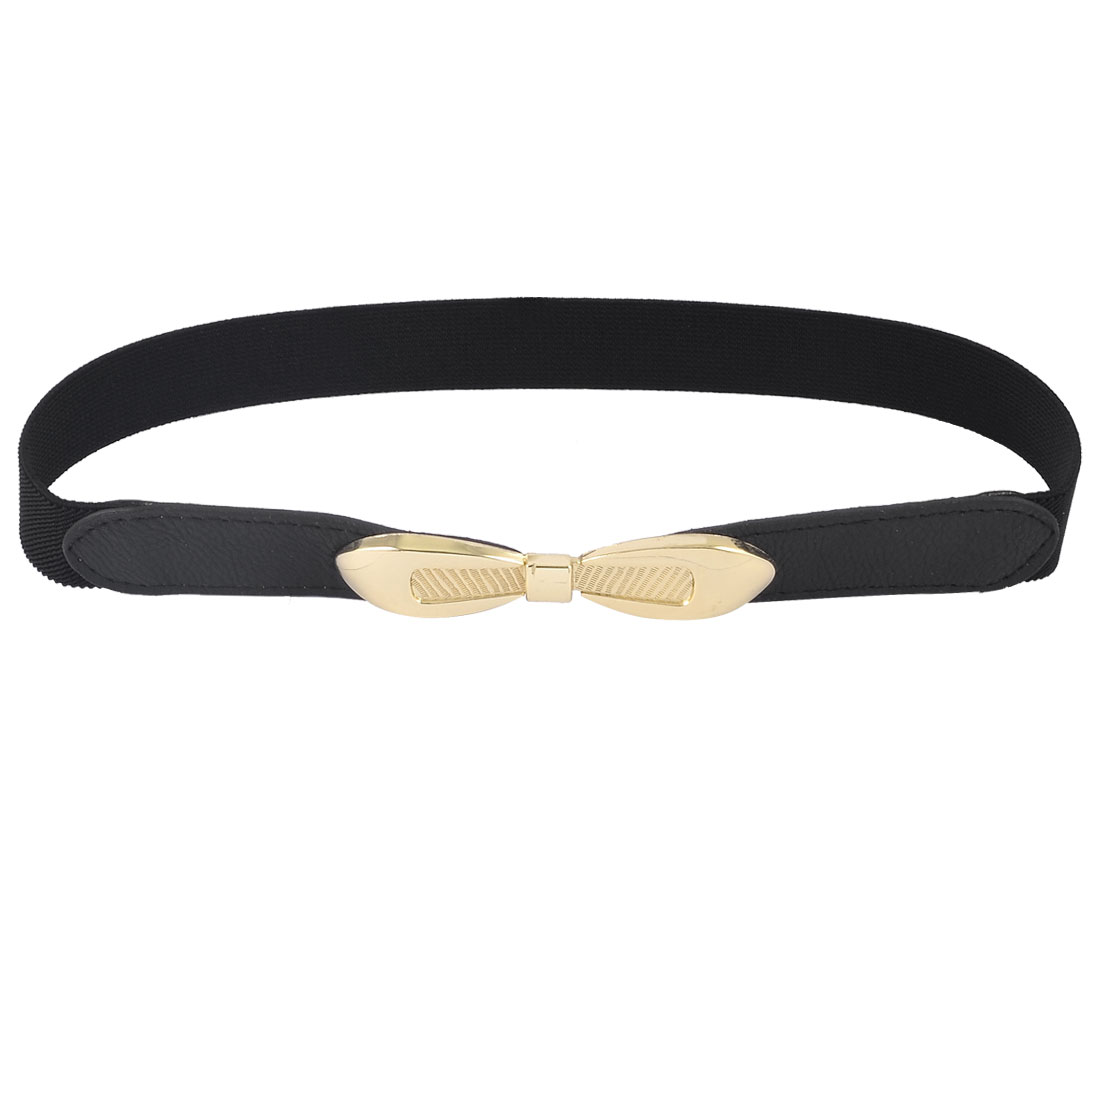 Lady Gold Tone Bowknot Interlock Buckle Solid Black Textured Elastic Cinch Belt